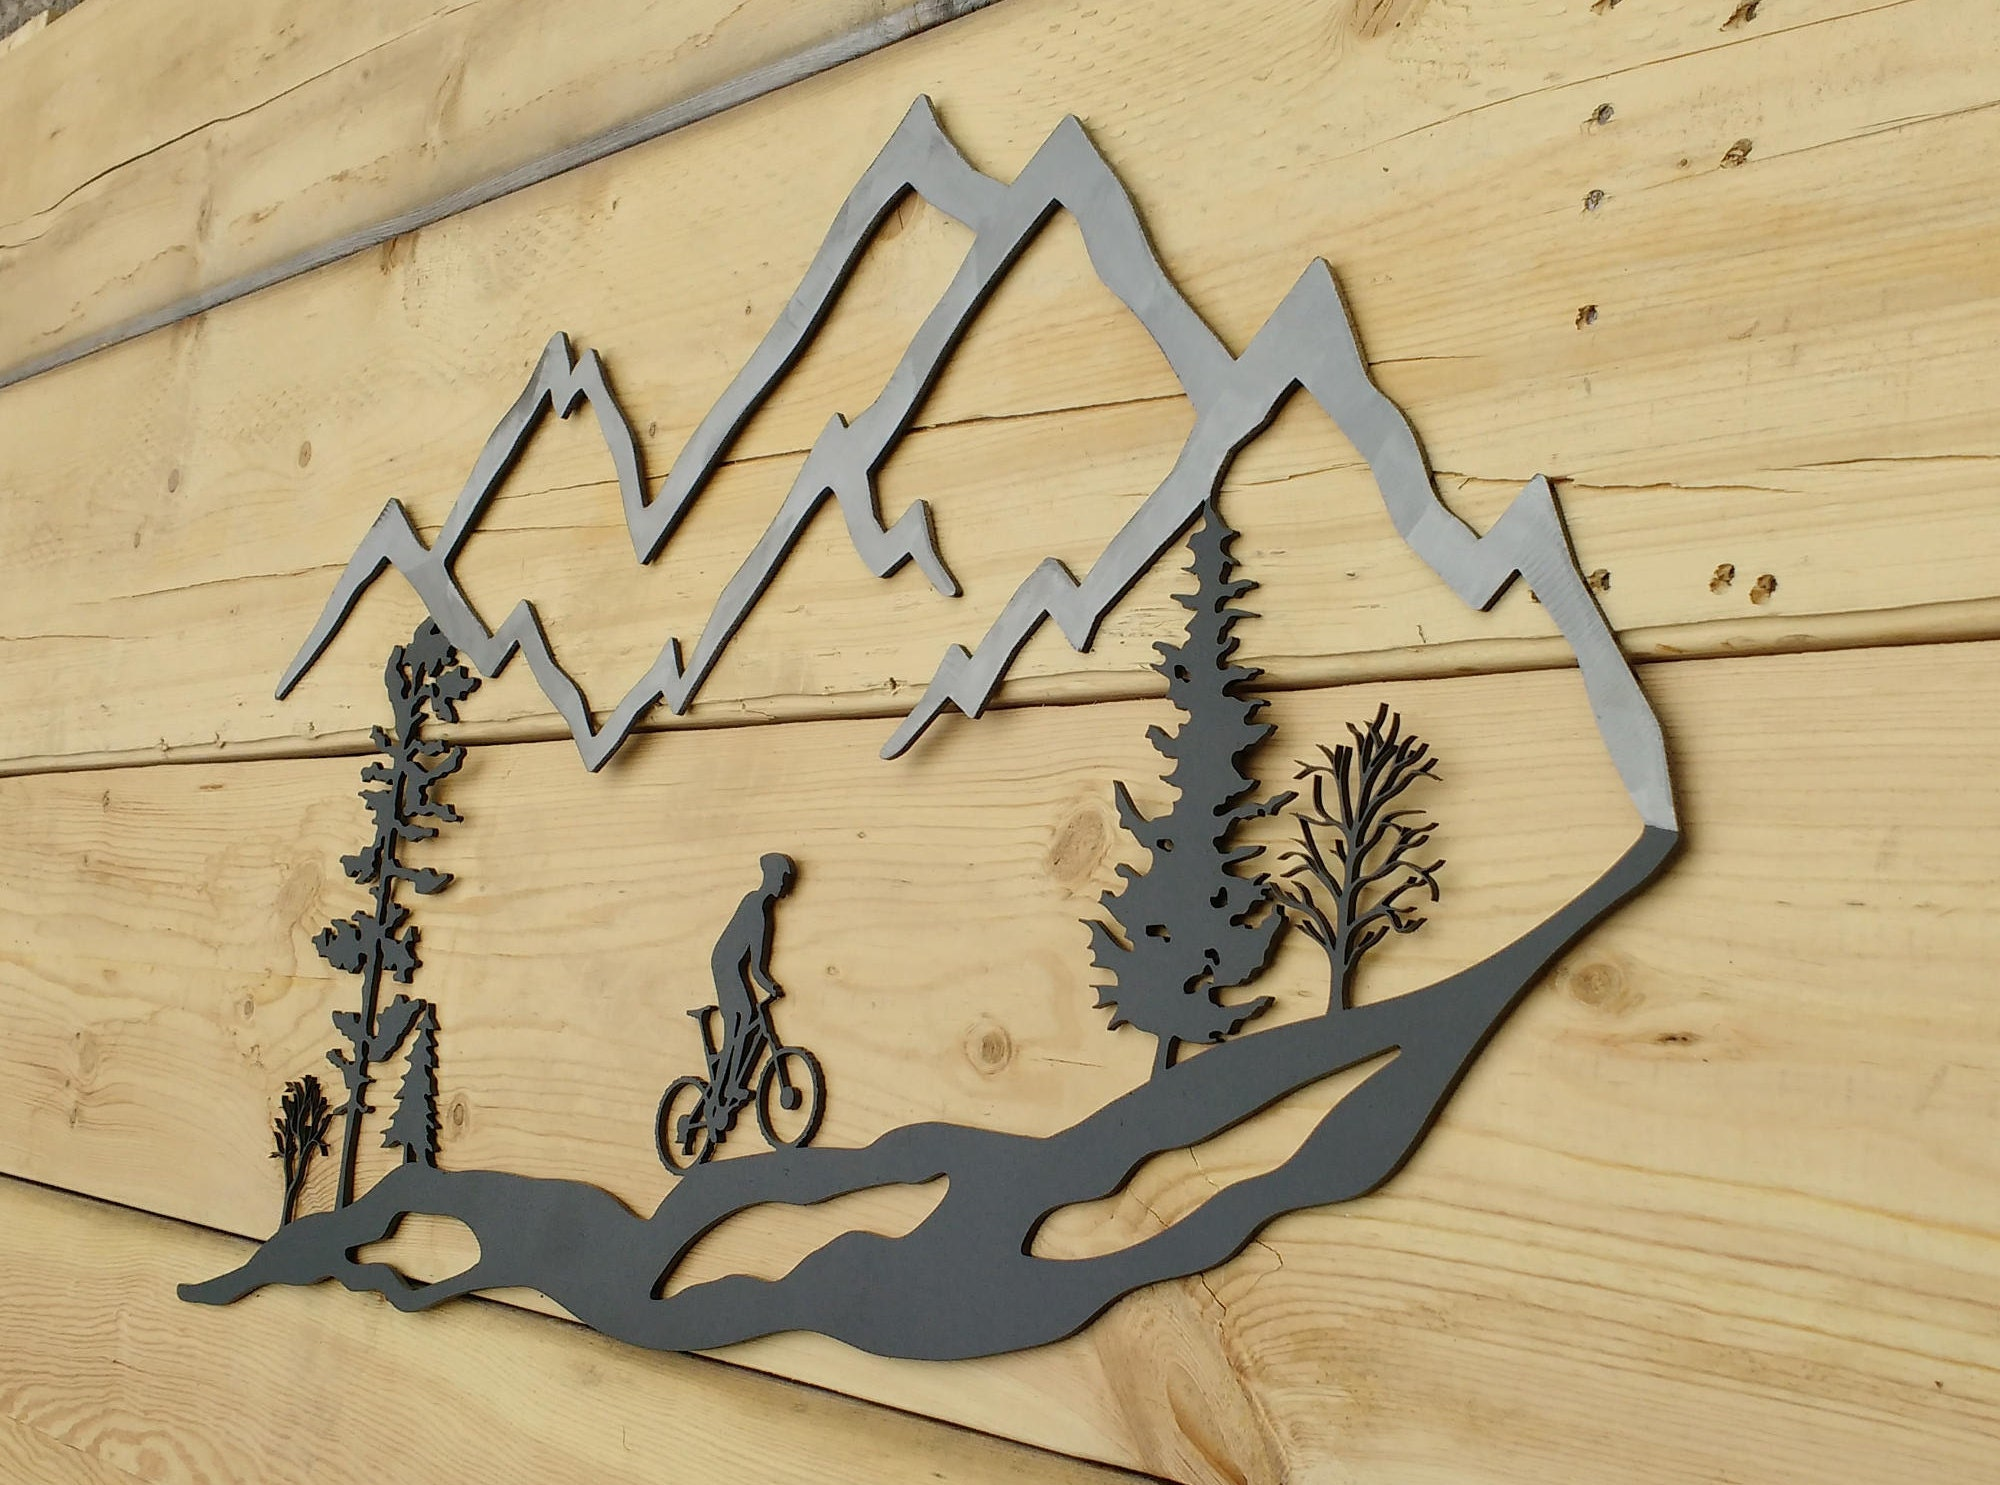 Metal Wall Art Mountain Bike Trees Mountain Bike MTB